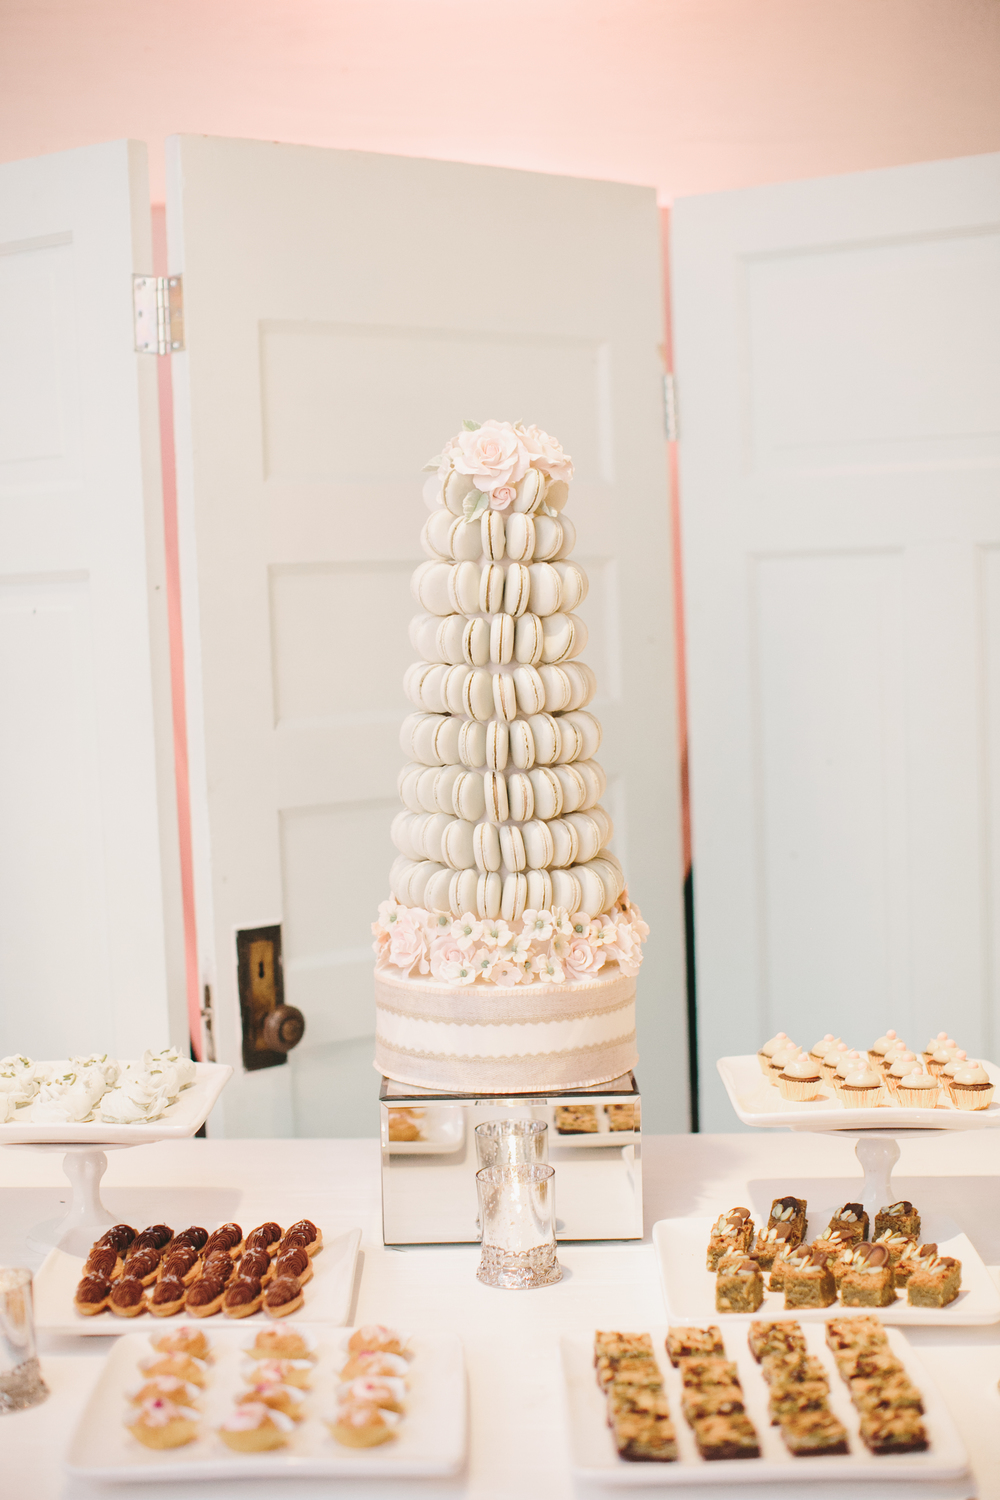 Macaron Tower | Cake Opera Co. | Wedding Planning & Design by Cynthia Martyn Fine Events |  | Fine Art Wedding Planning & Design